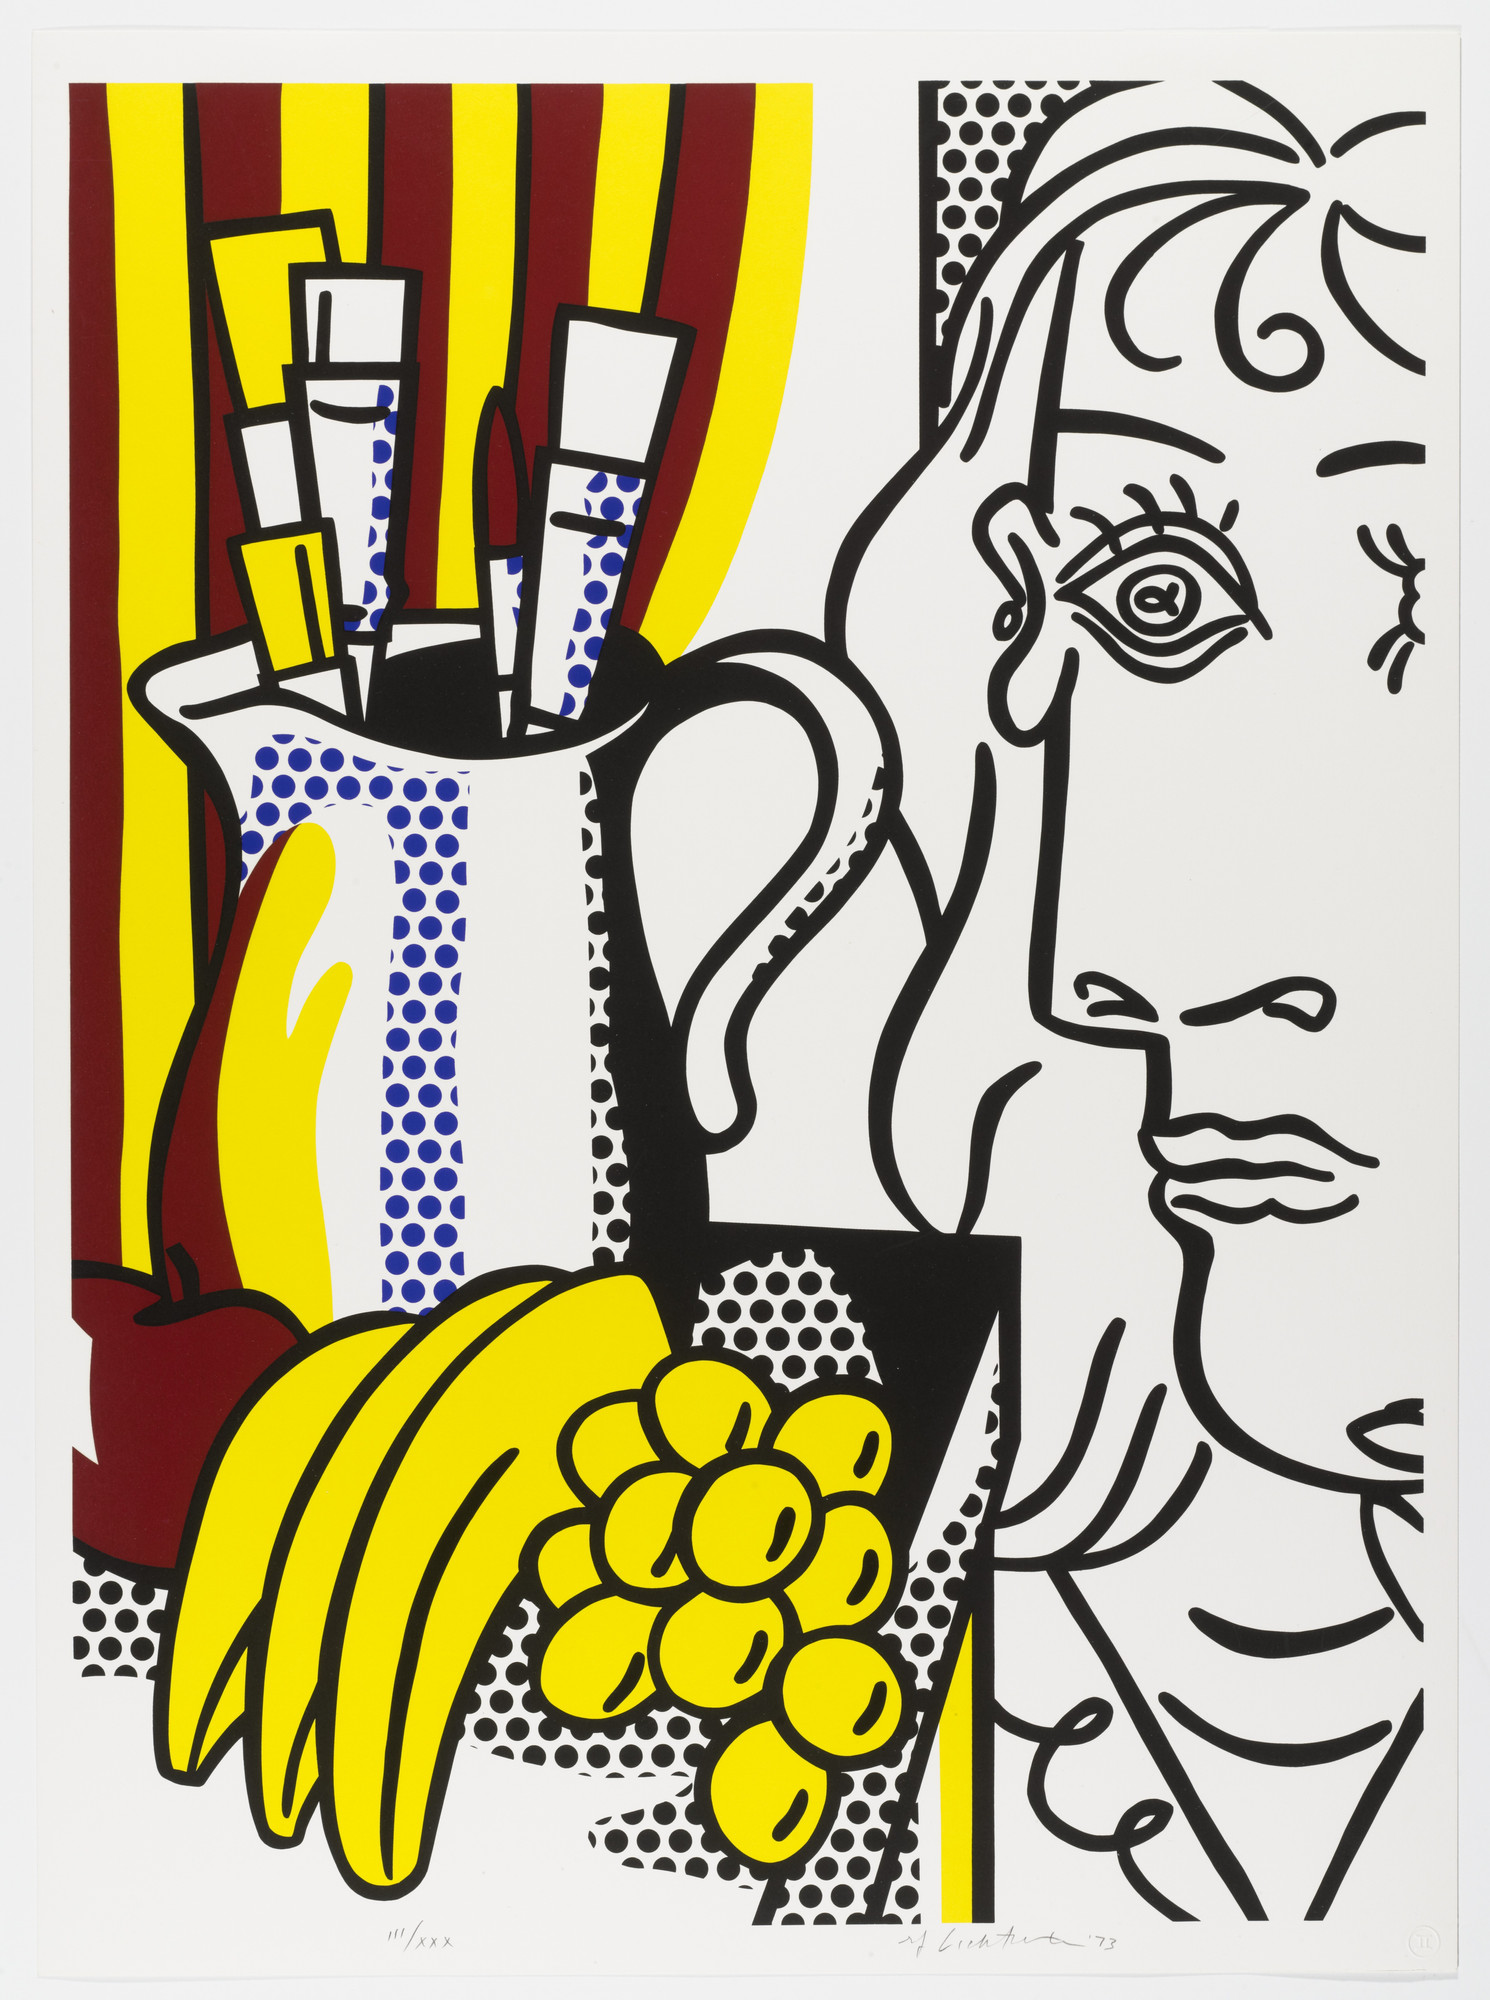 Roy Lichtenstein. Still Life with Picasso from Homage to Picasso (Hommage à Picasso). 1973